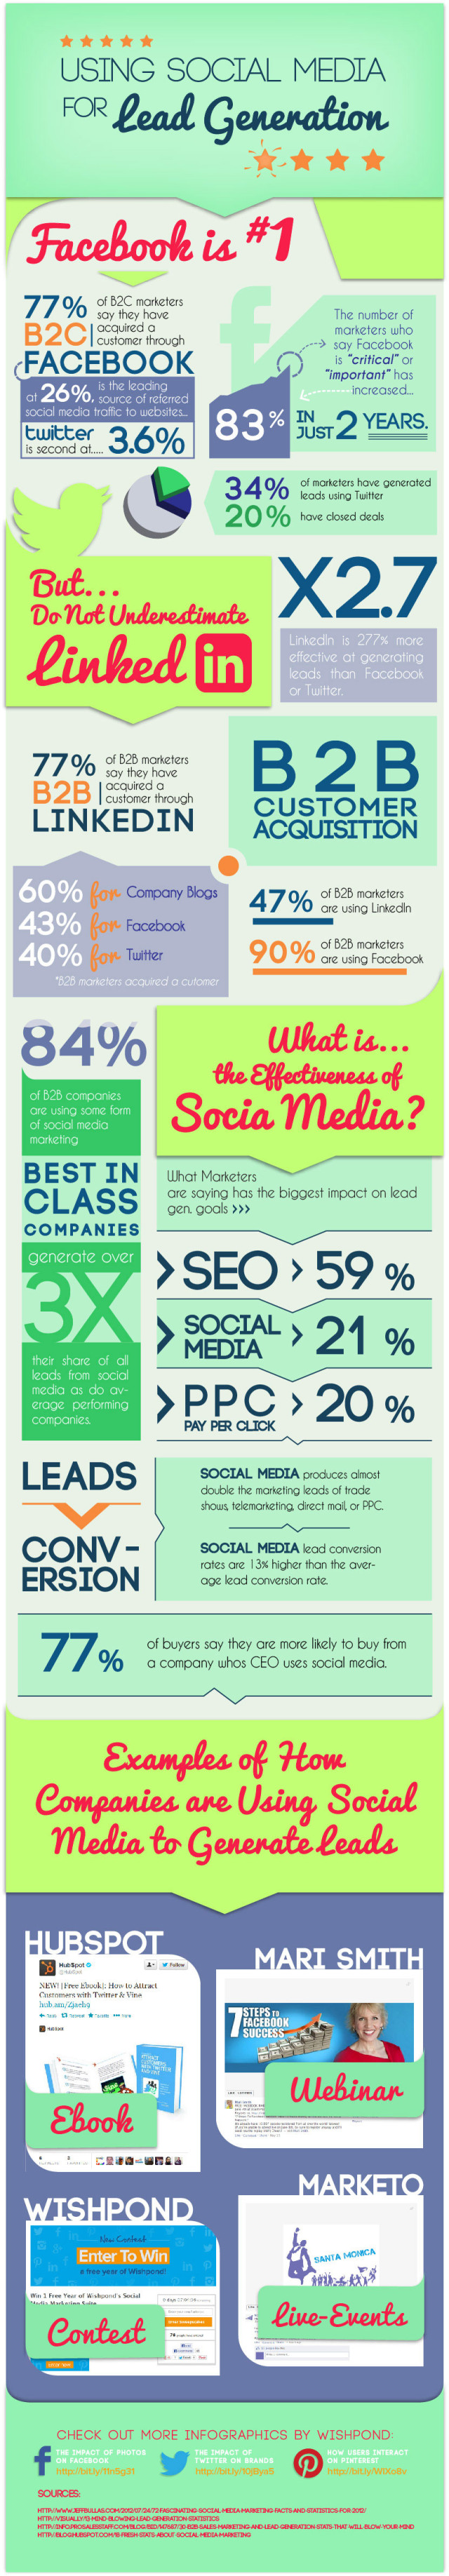 using-social-media-lead-generation